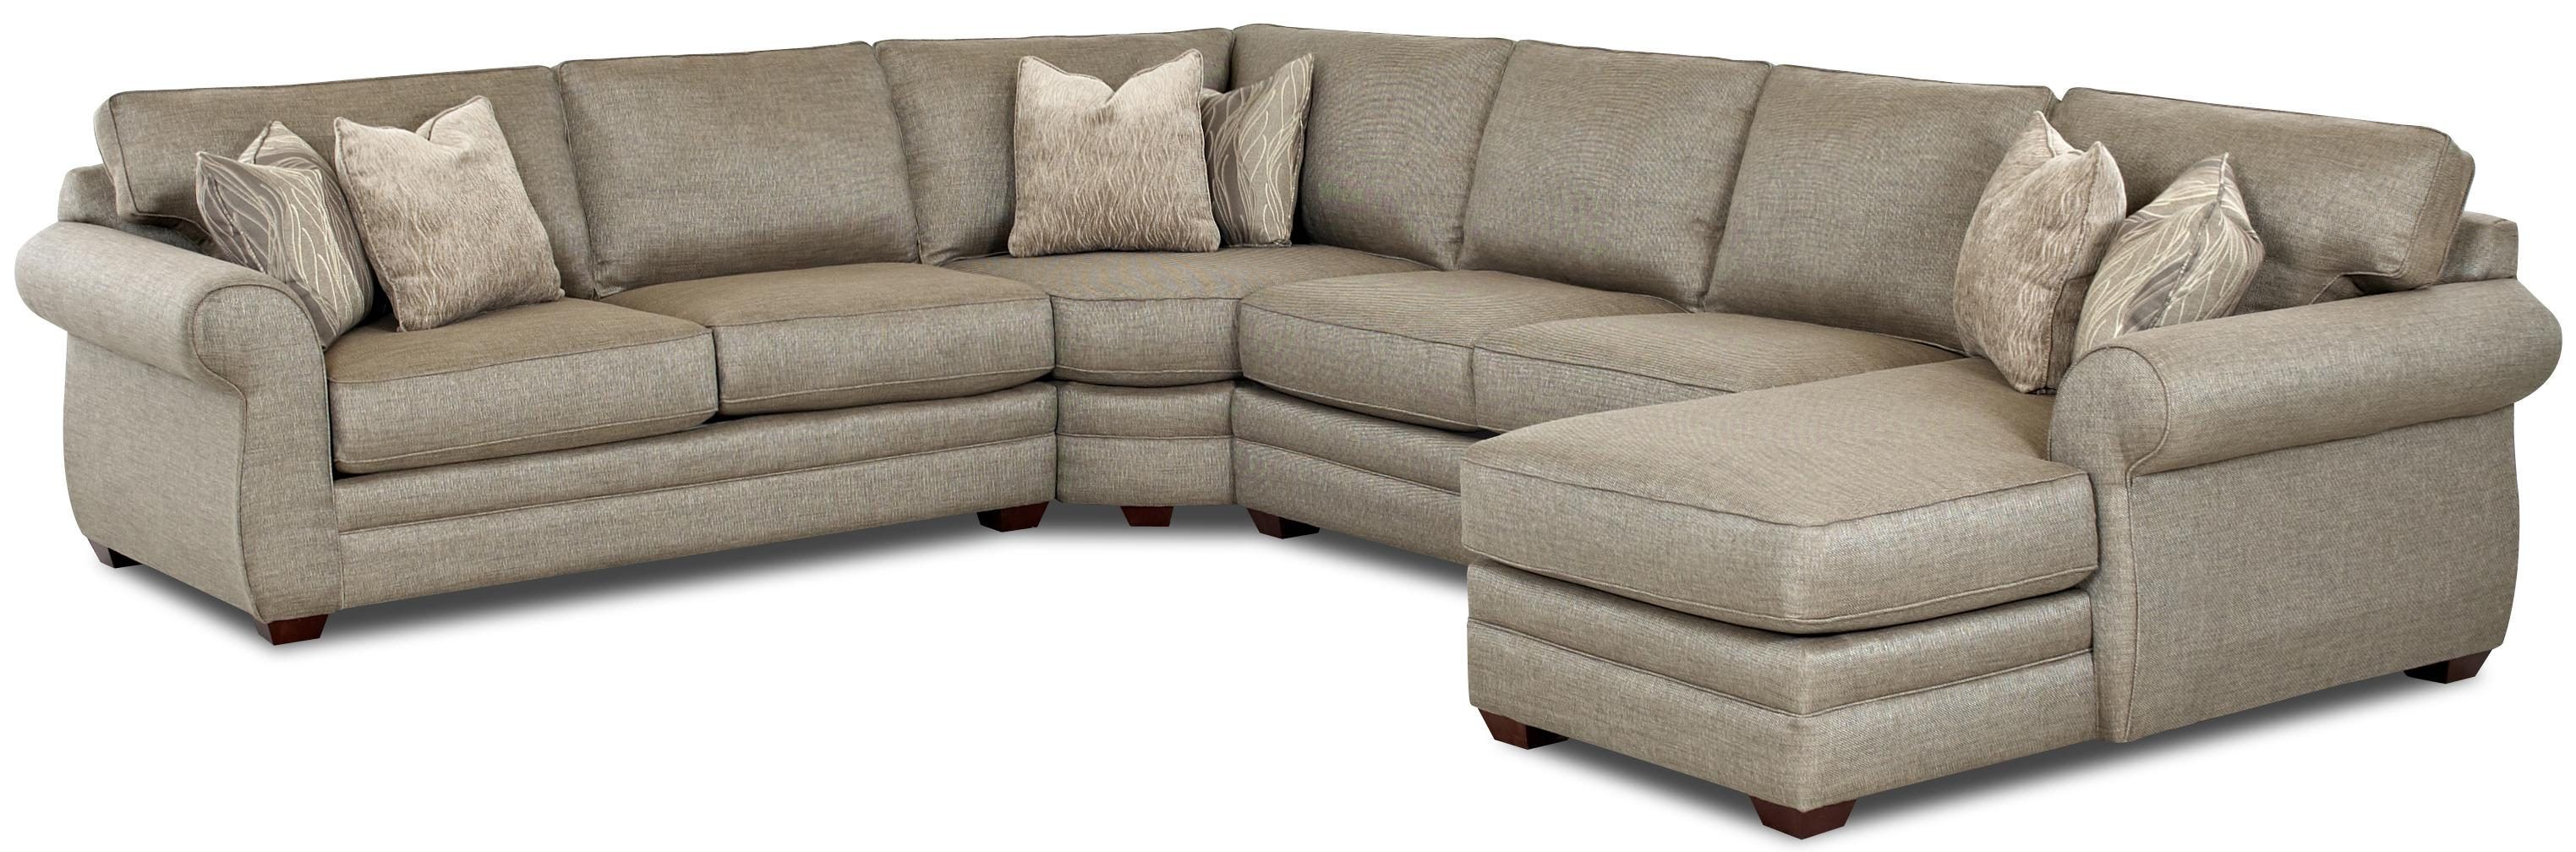 Transitional Sectional Sofa with Right Chaise and Full Sleeper by